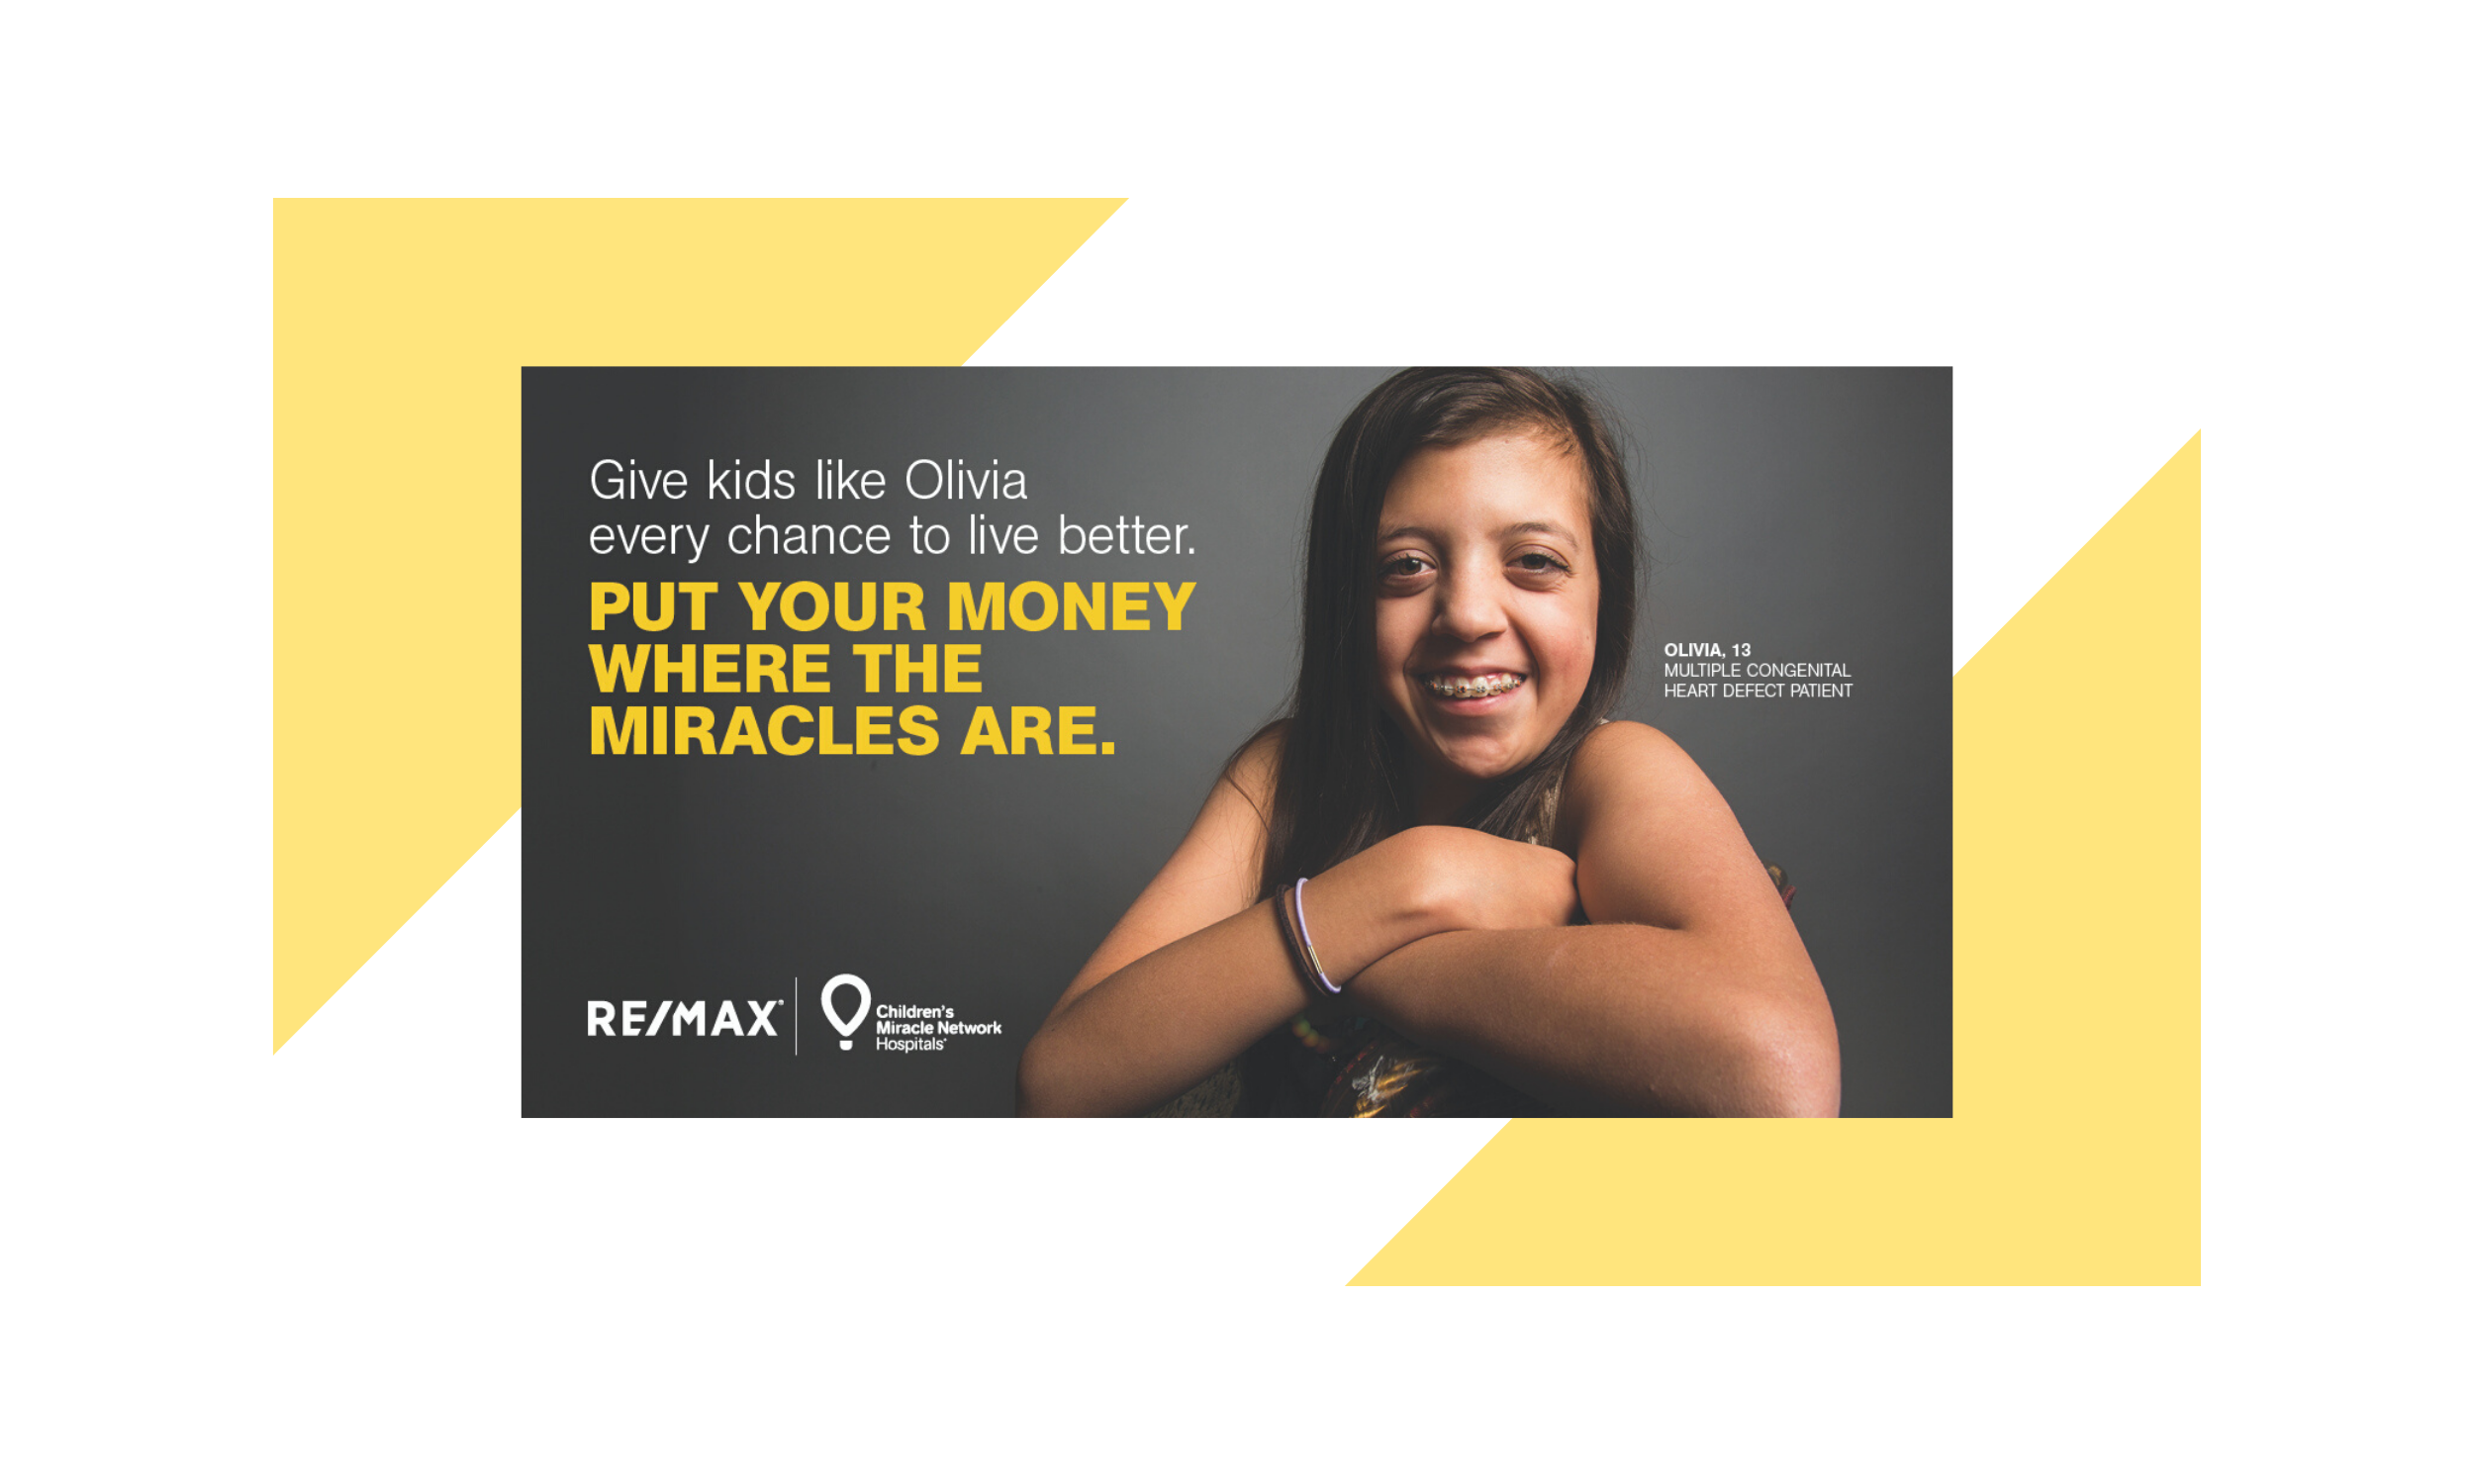 RE/MAX Suburban Children's Miracle Network